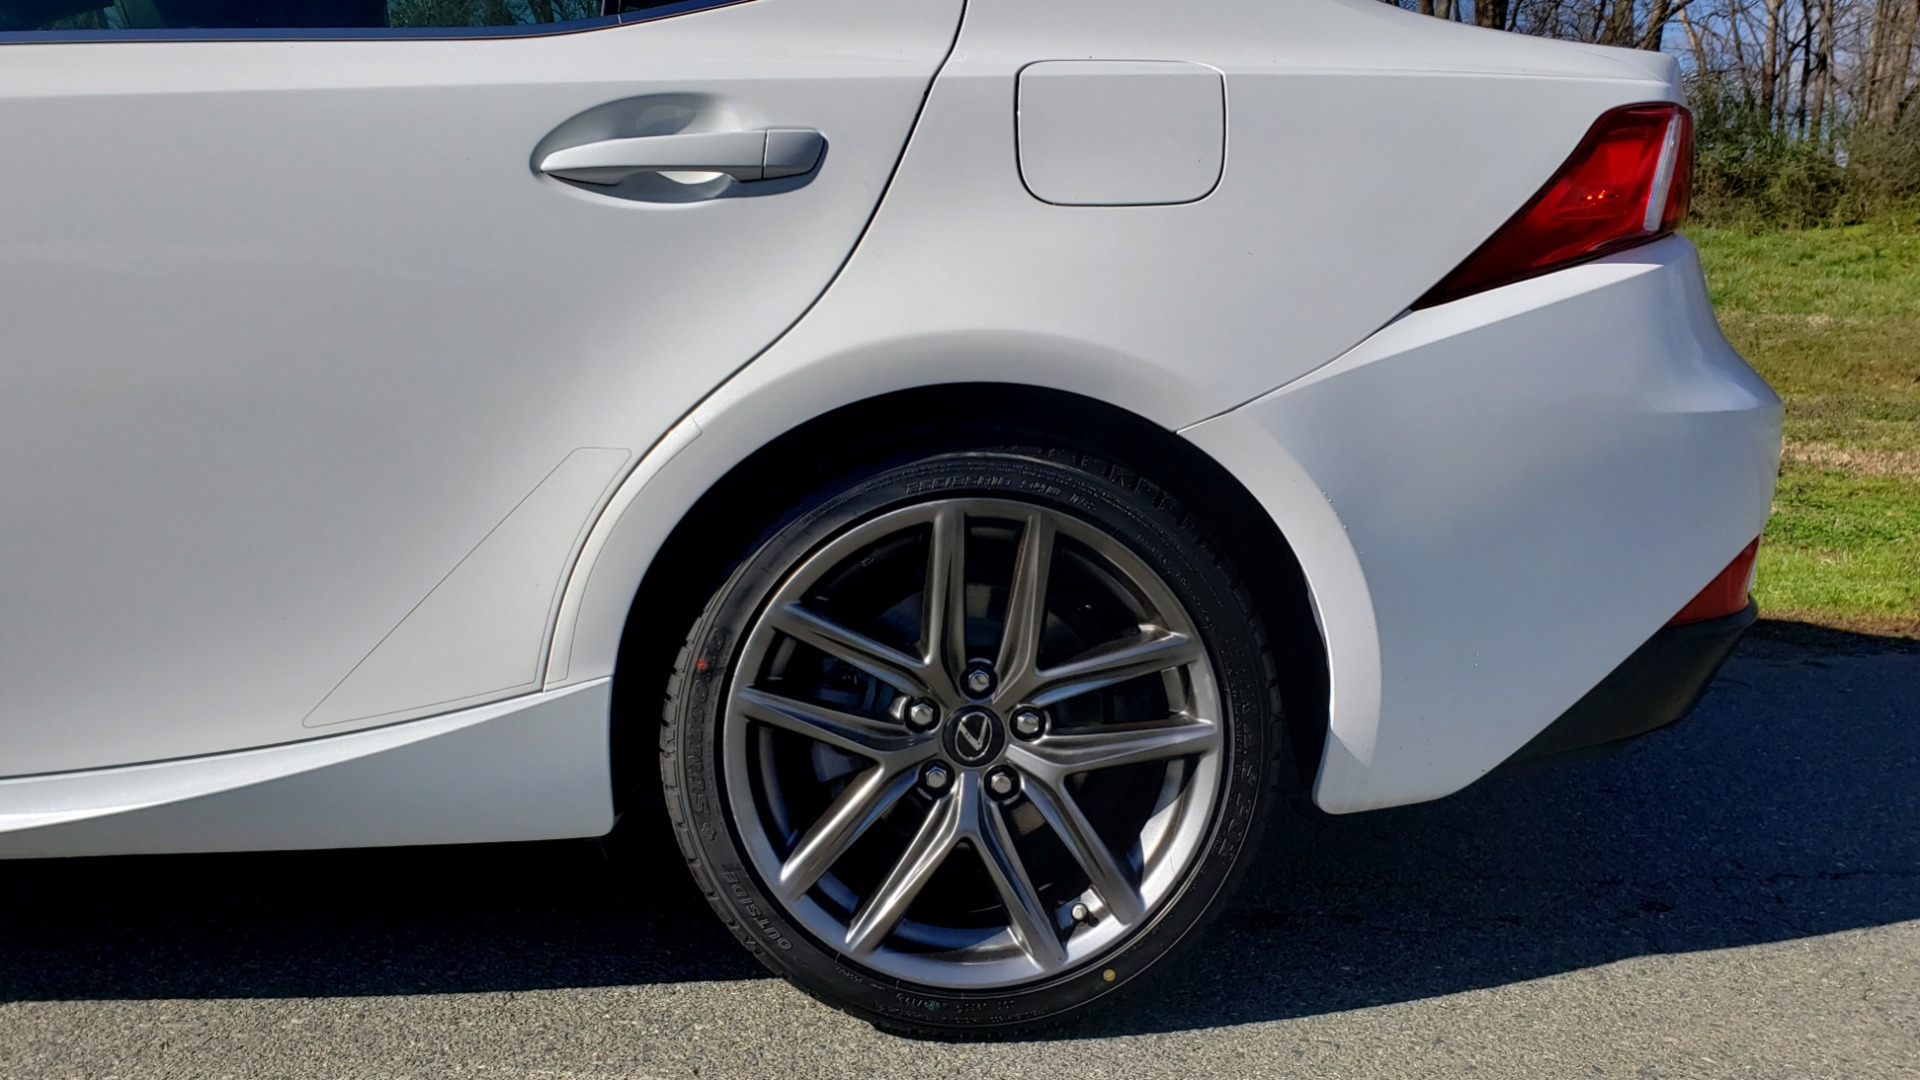 Used 2014 Lexus IS 250 F-SPORT / NAV / SUNROOF / REARVIEW / BSM for sale Sold at Formula Imports in Charlotte NC 28227 69